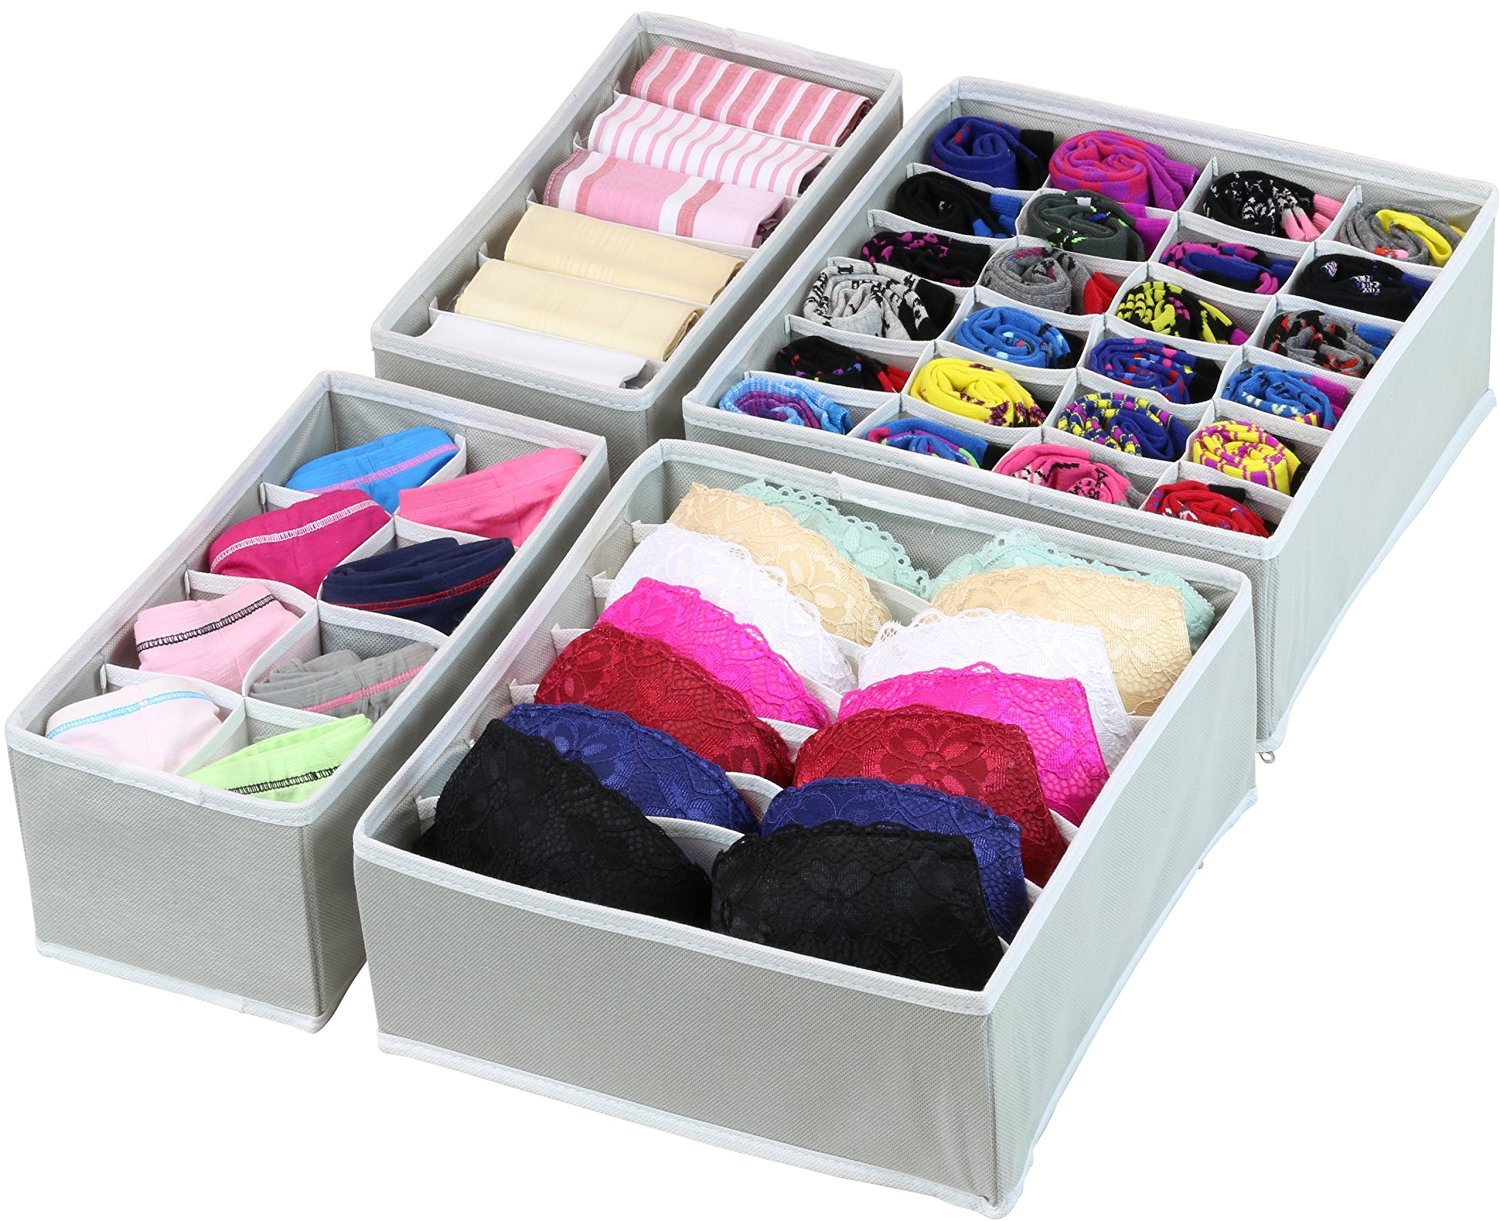 Underwear and sock organizer and 10 brilliant closet organization ideas!